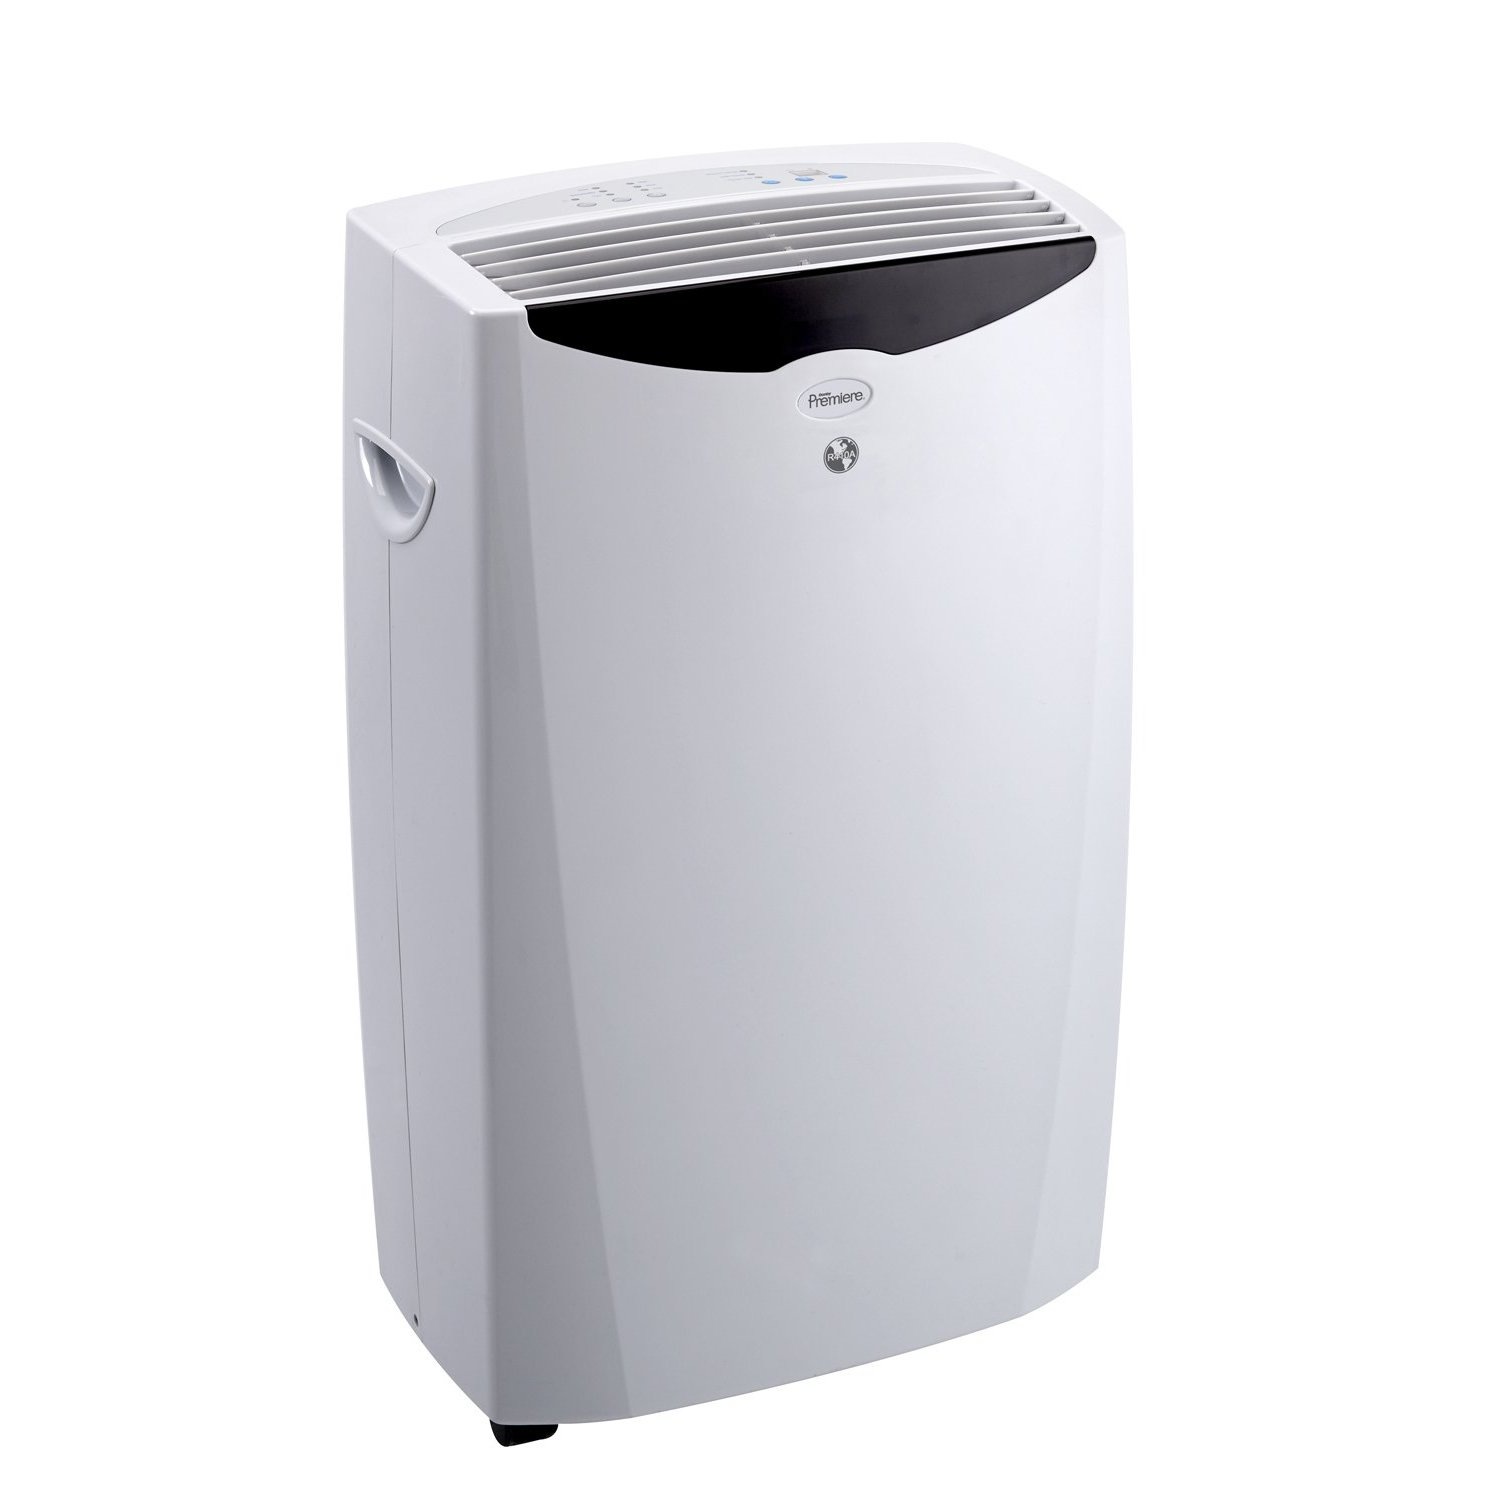 DPAC12010H 12 000 BTU portable air conditioner with heater  Euro Grey #5D636E